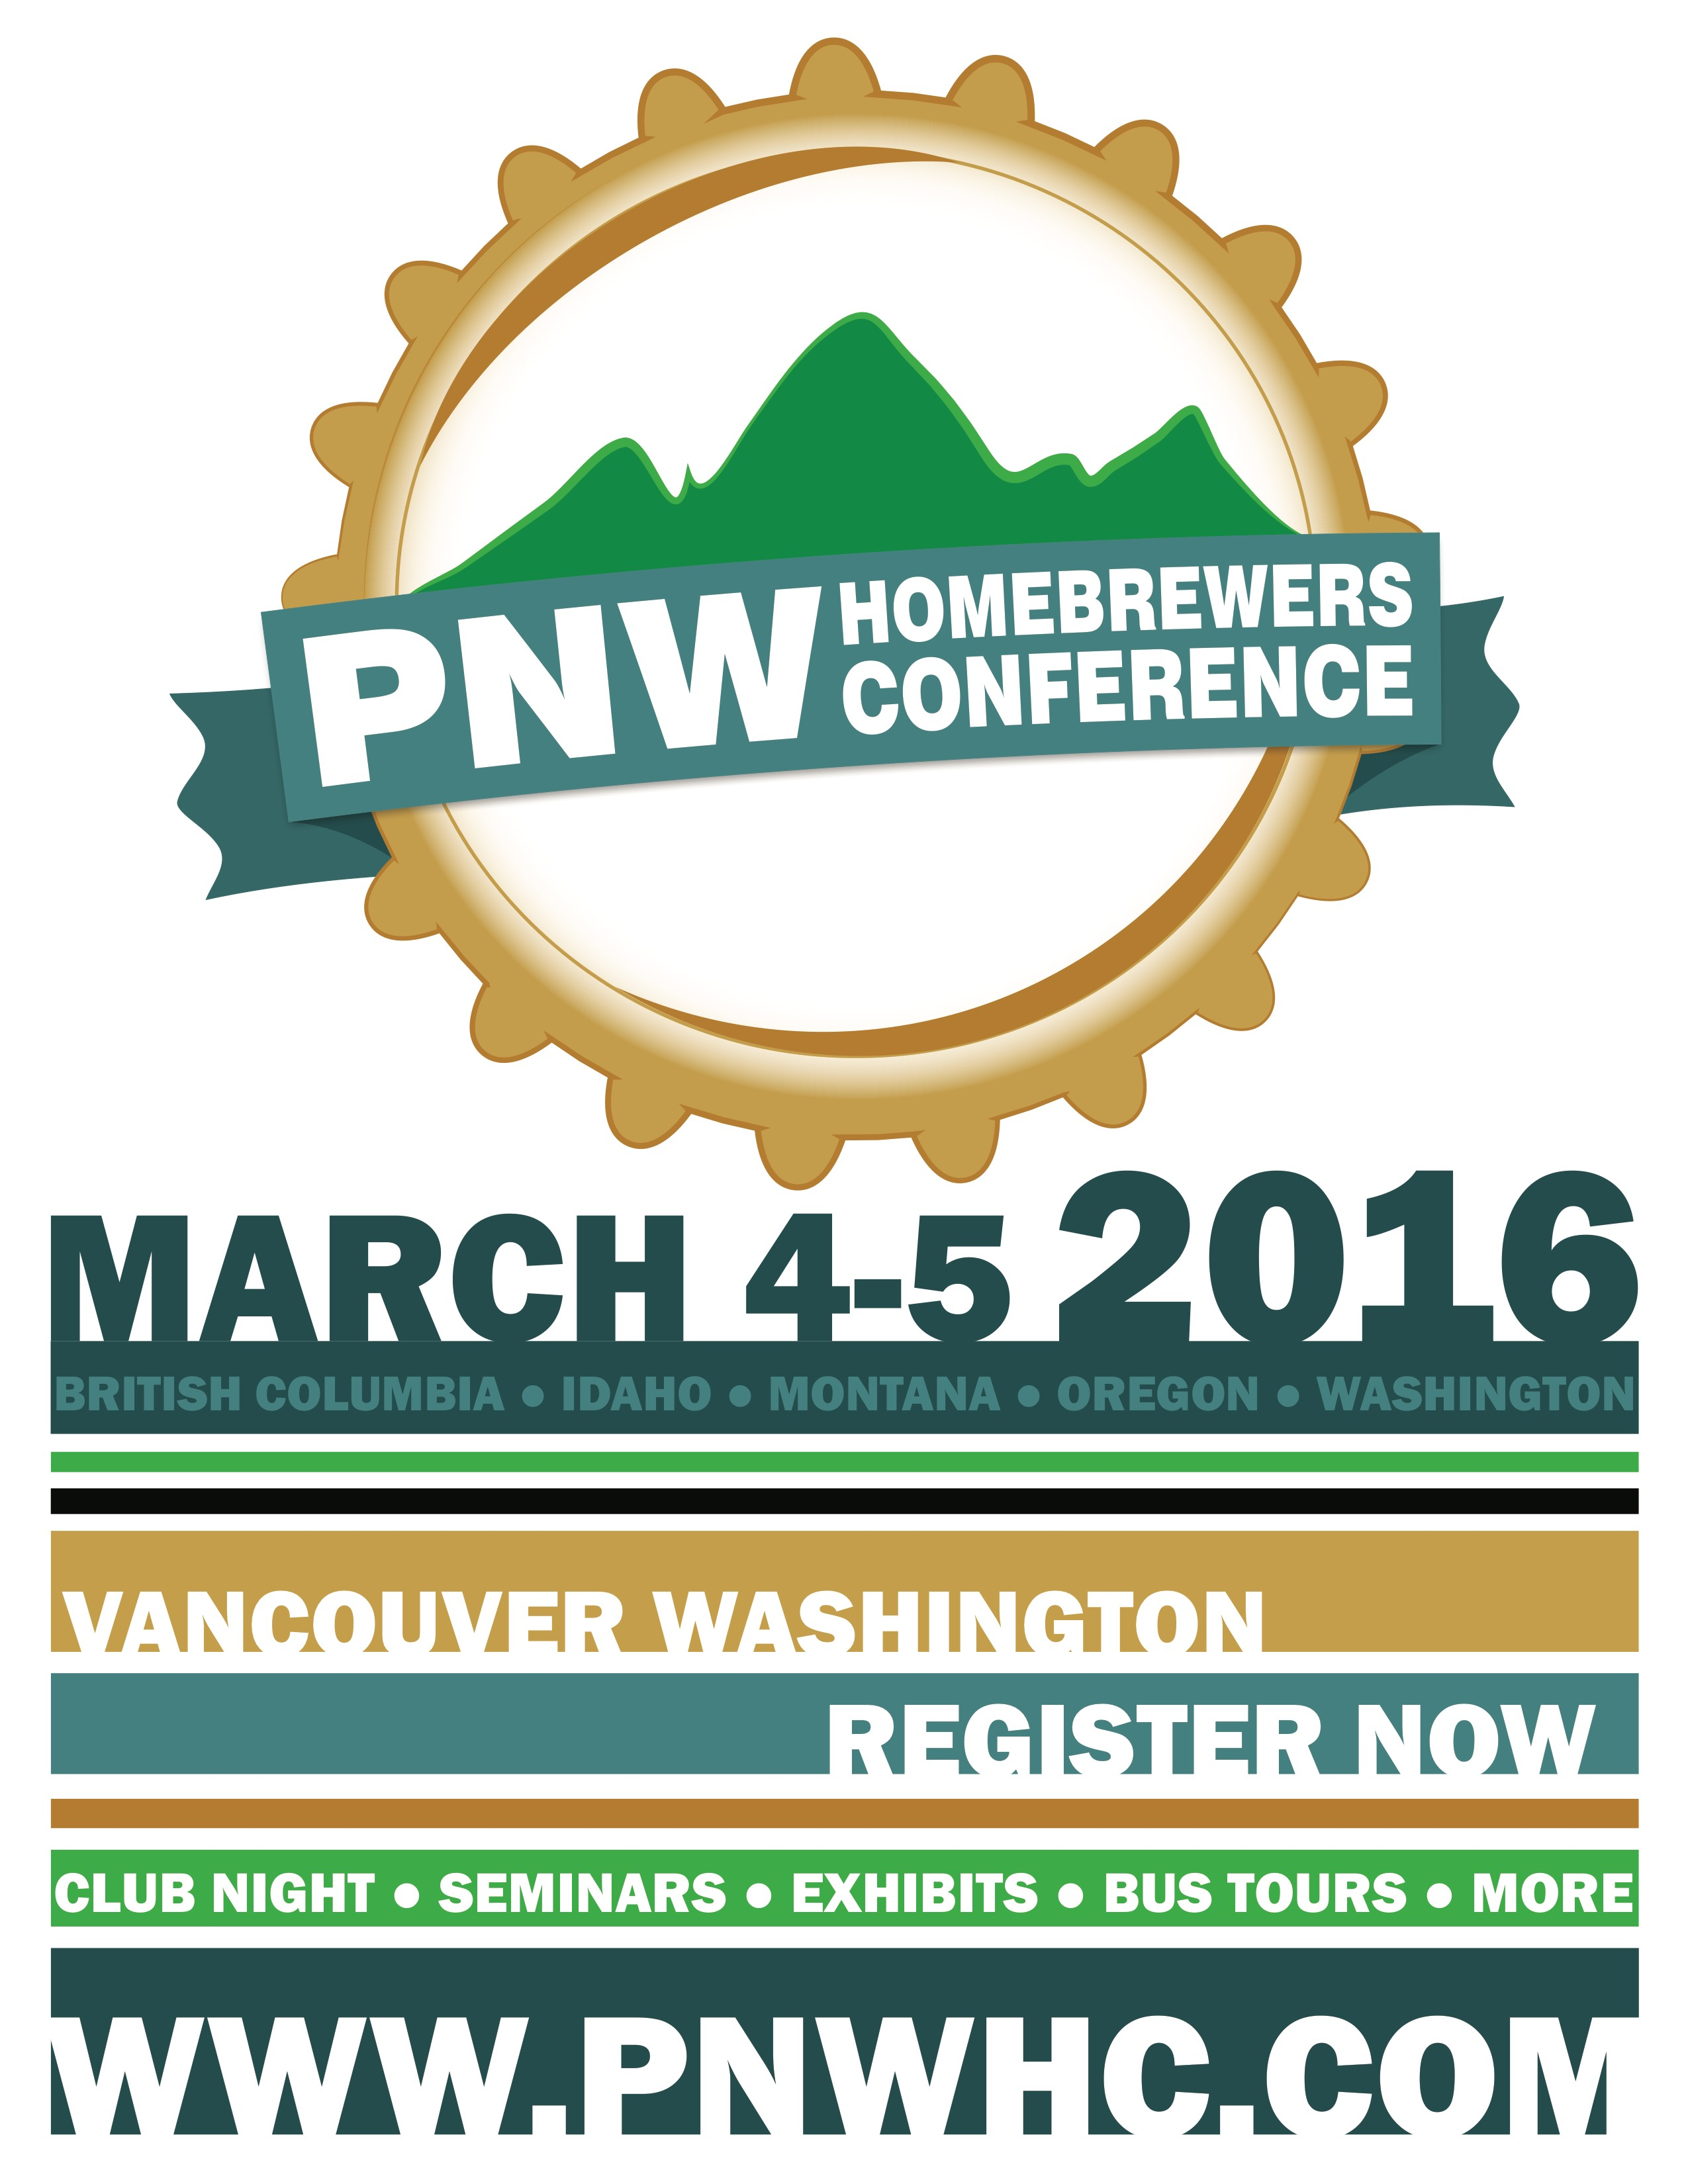 2016 Pacific Northwest Homebrewers Conference Poster